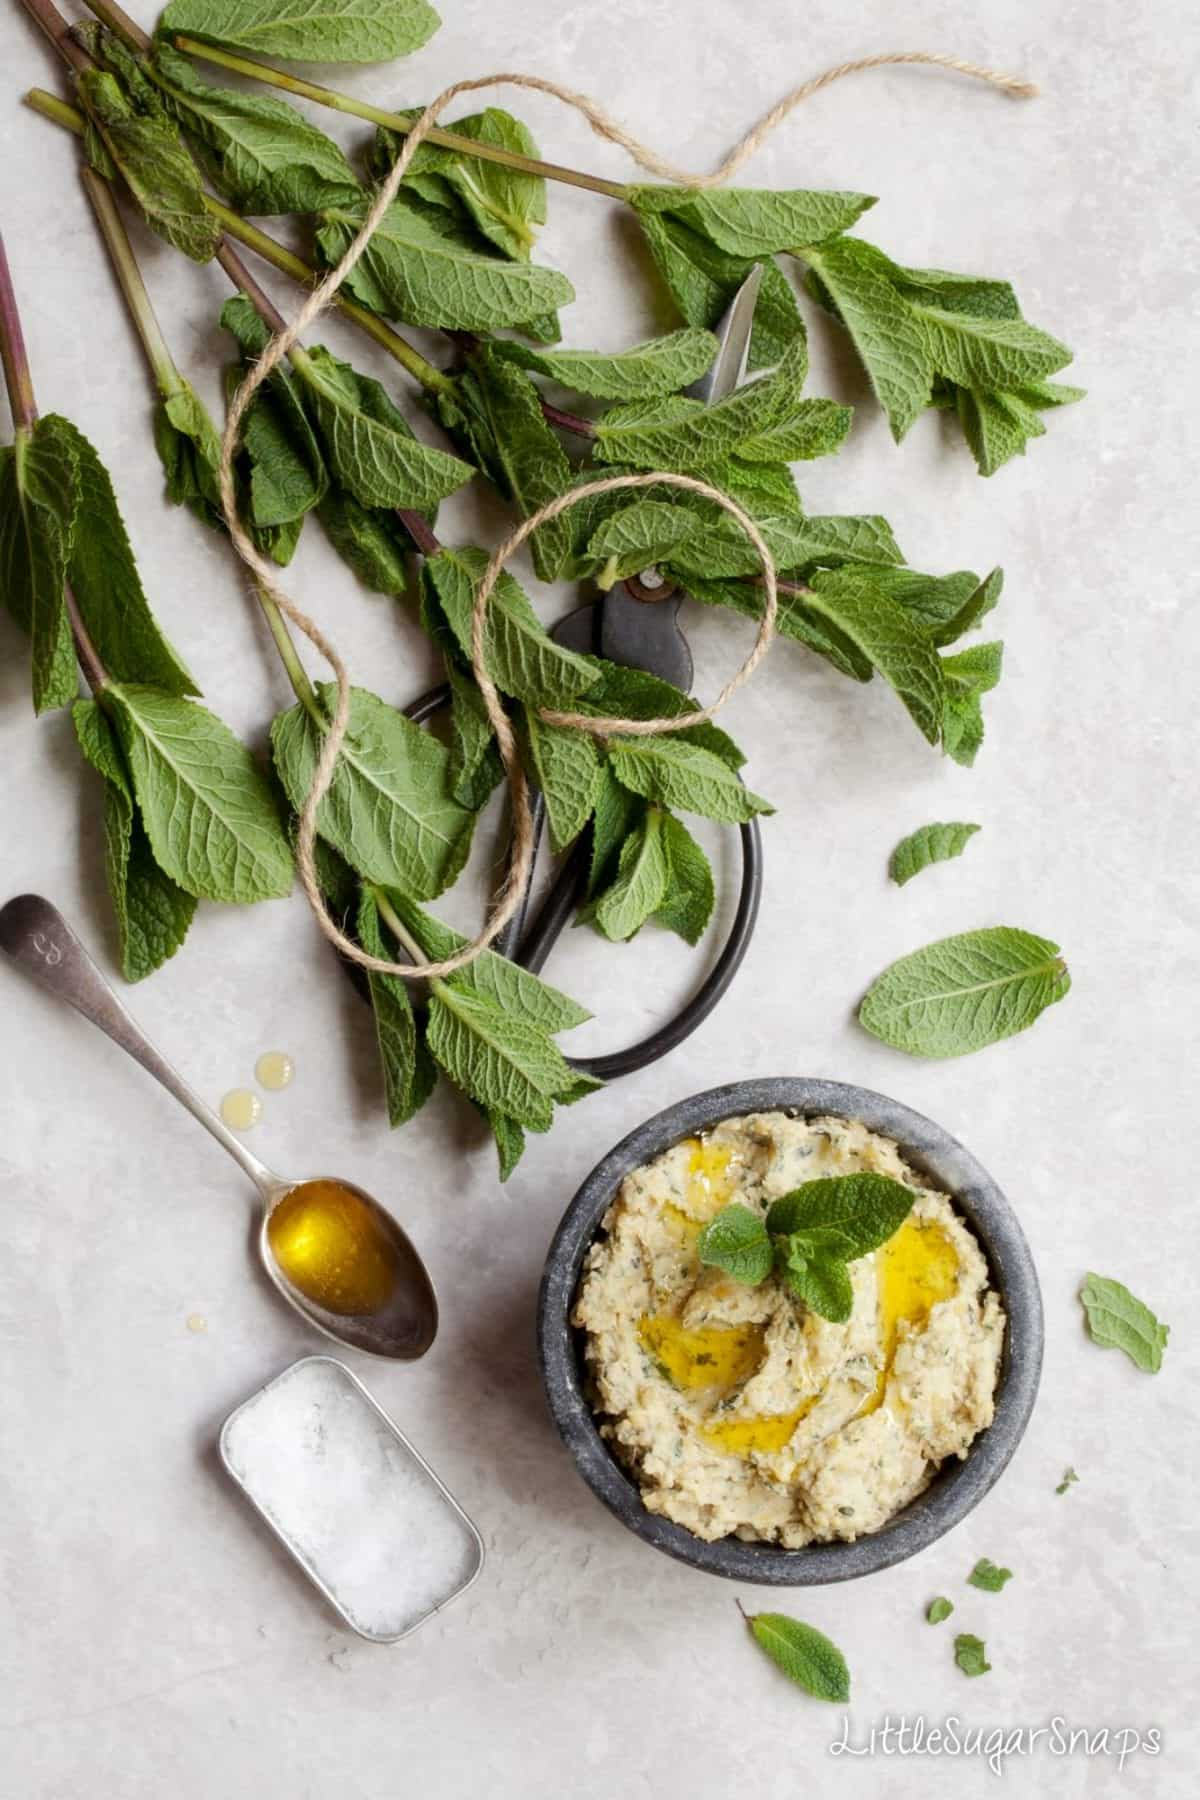 Preserved Lemon & Mint Hummus